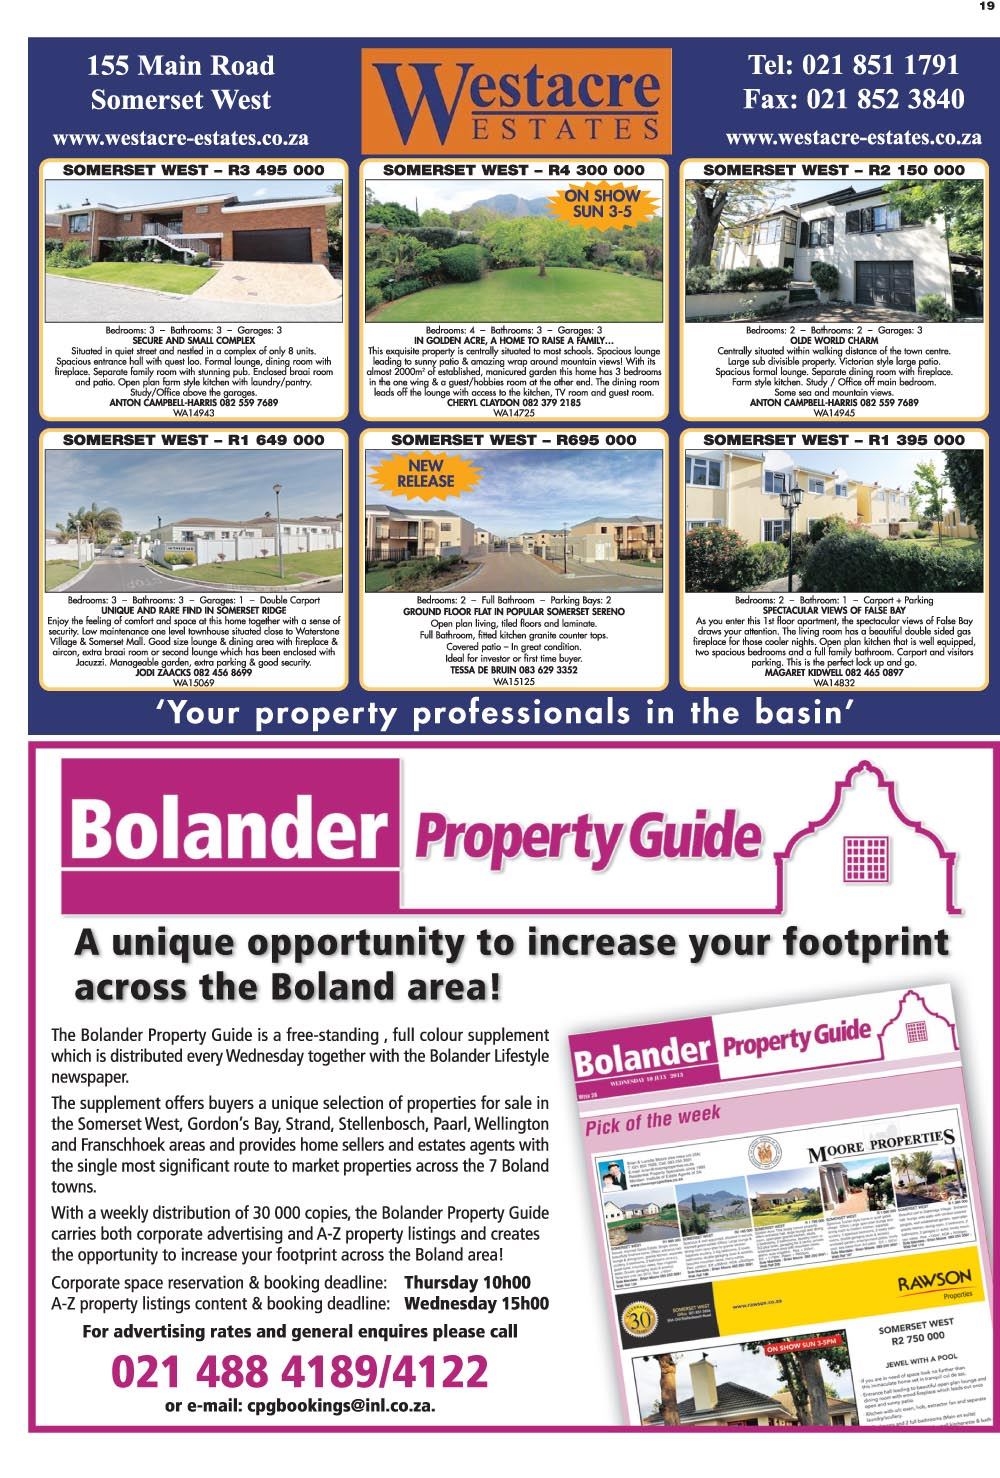 You are browsing images from the article: Property Selection December 09 2015